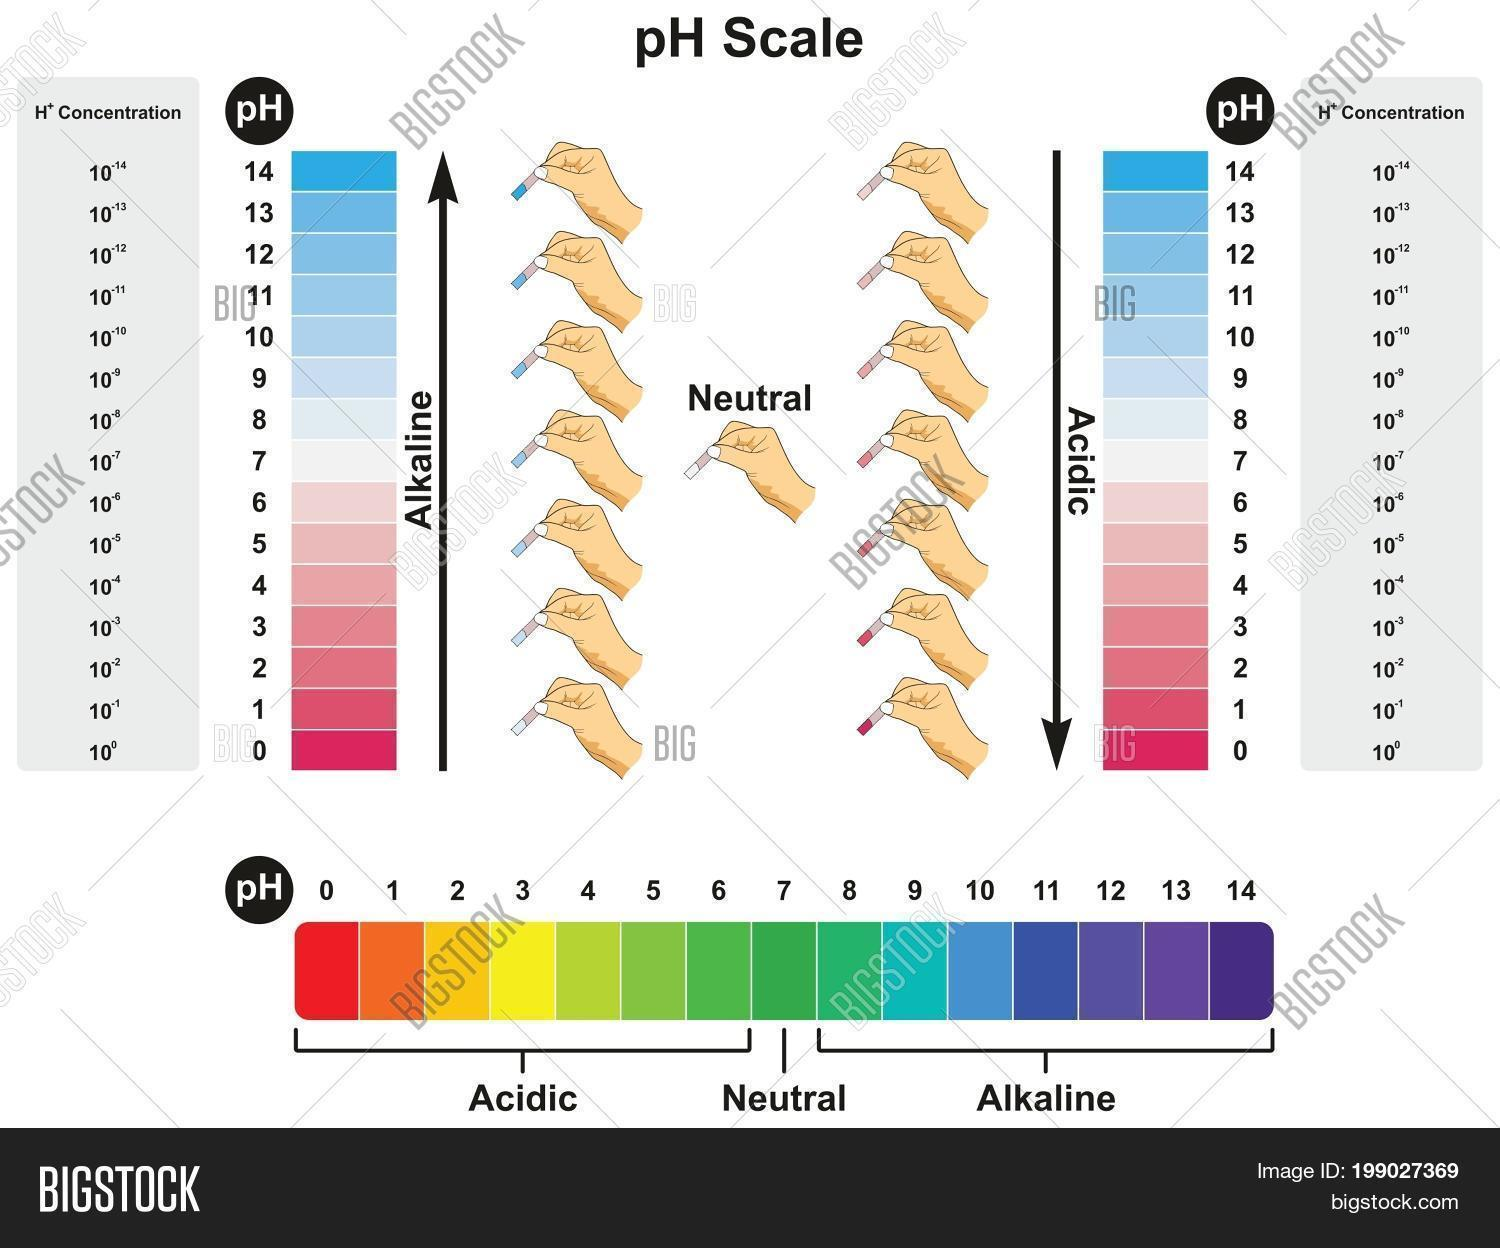 hight resolution of ph scale infographic diagram showing values and concentrations with experiment example result in acidic neutral or